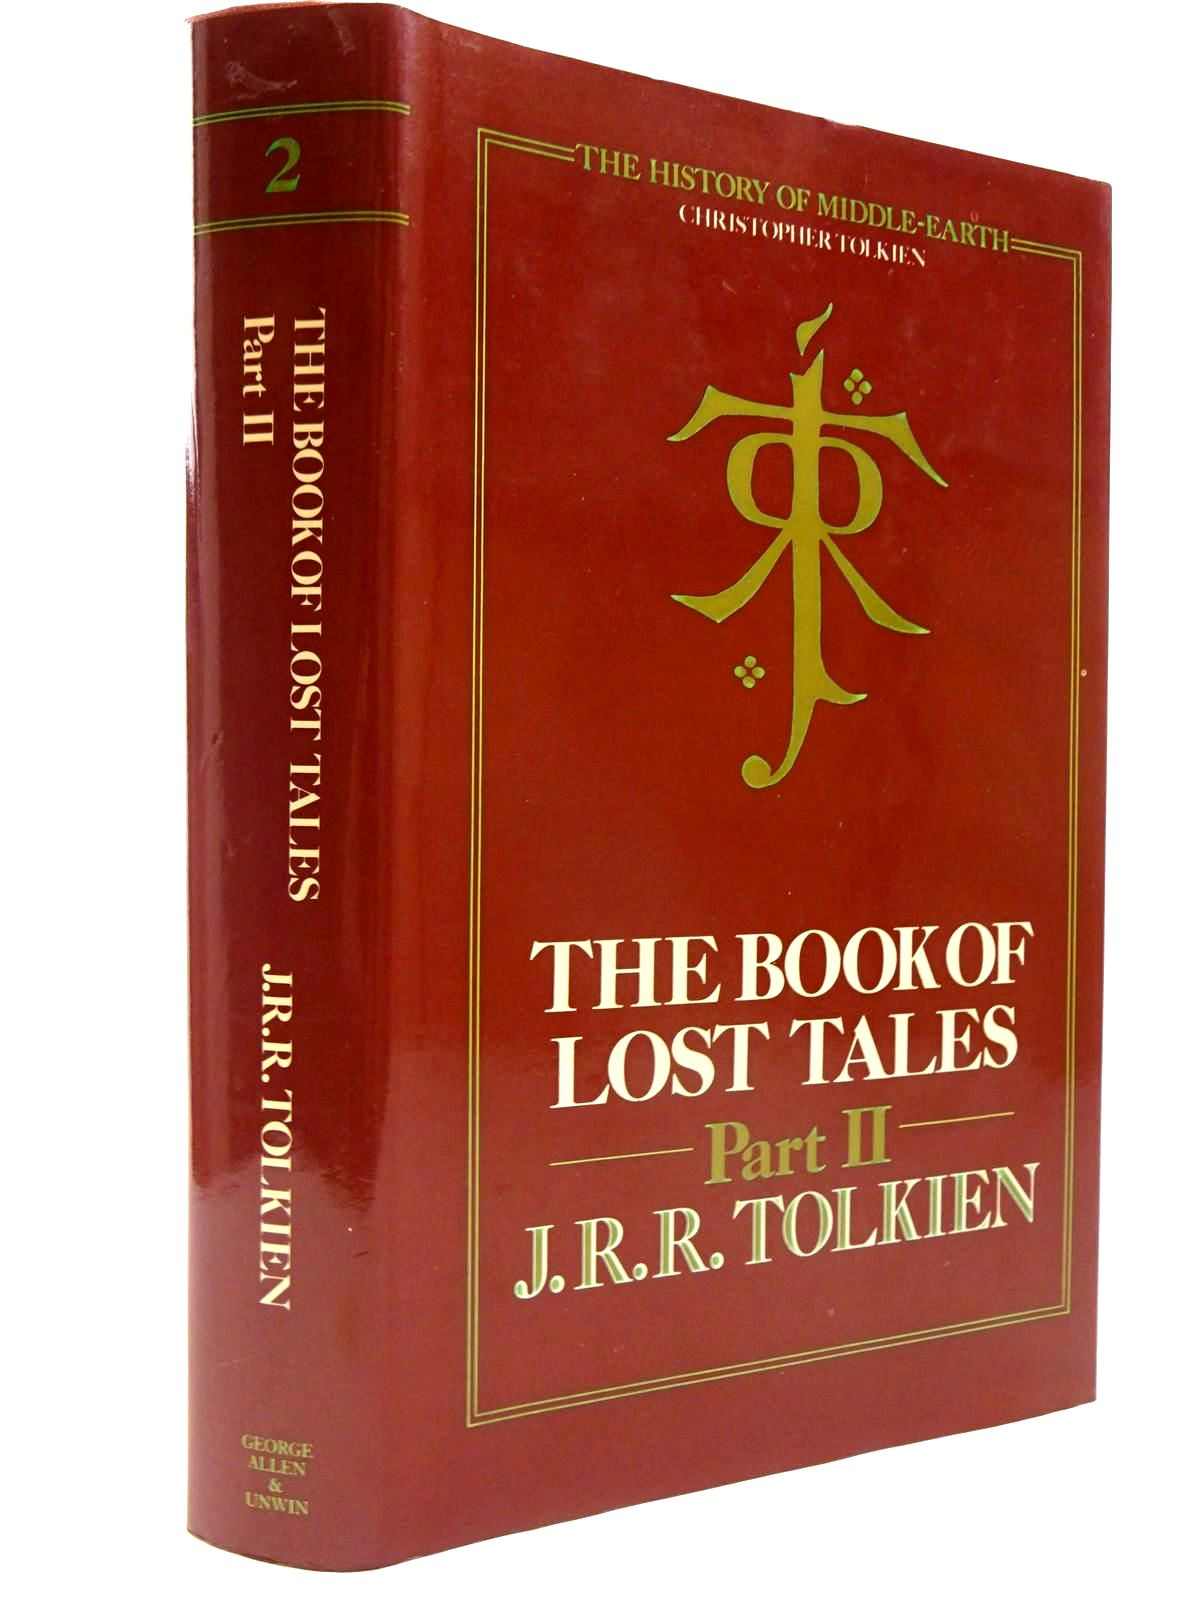 Photo of THE BOOK OF LOST TALES PART II written by Tolkien, J.R.R. published by George Allen & Unwin (STOCK CODE: 2130474)  for sale by Stella & Rose's Books